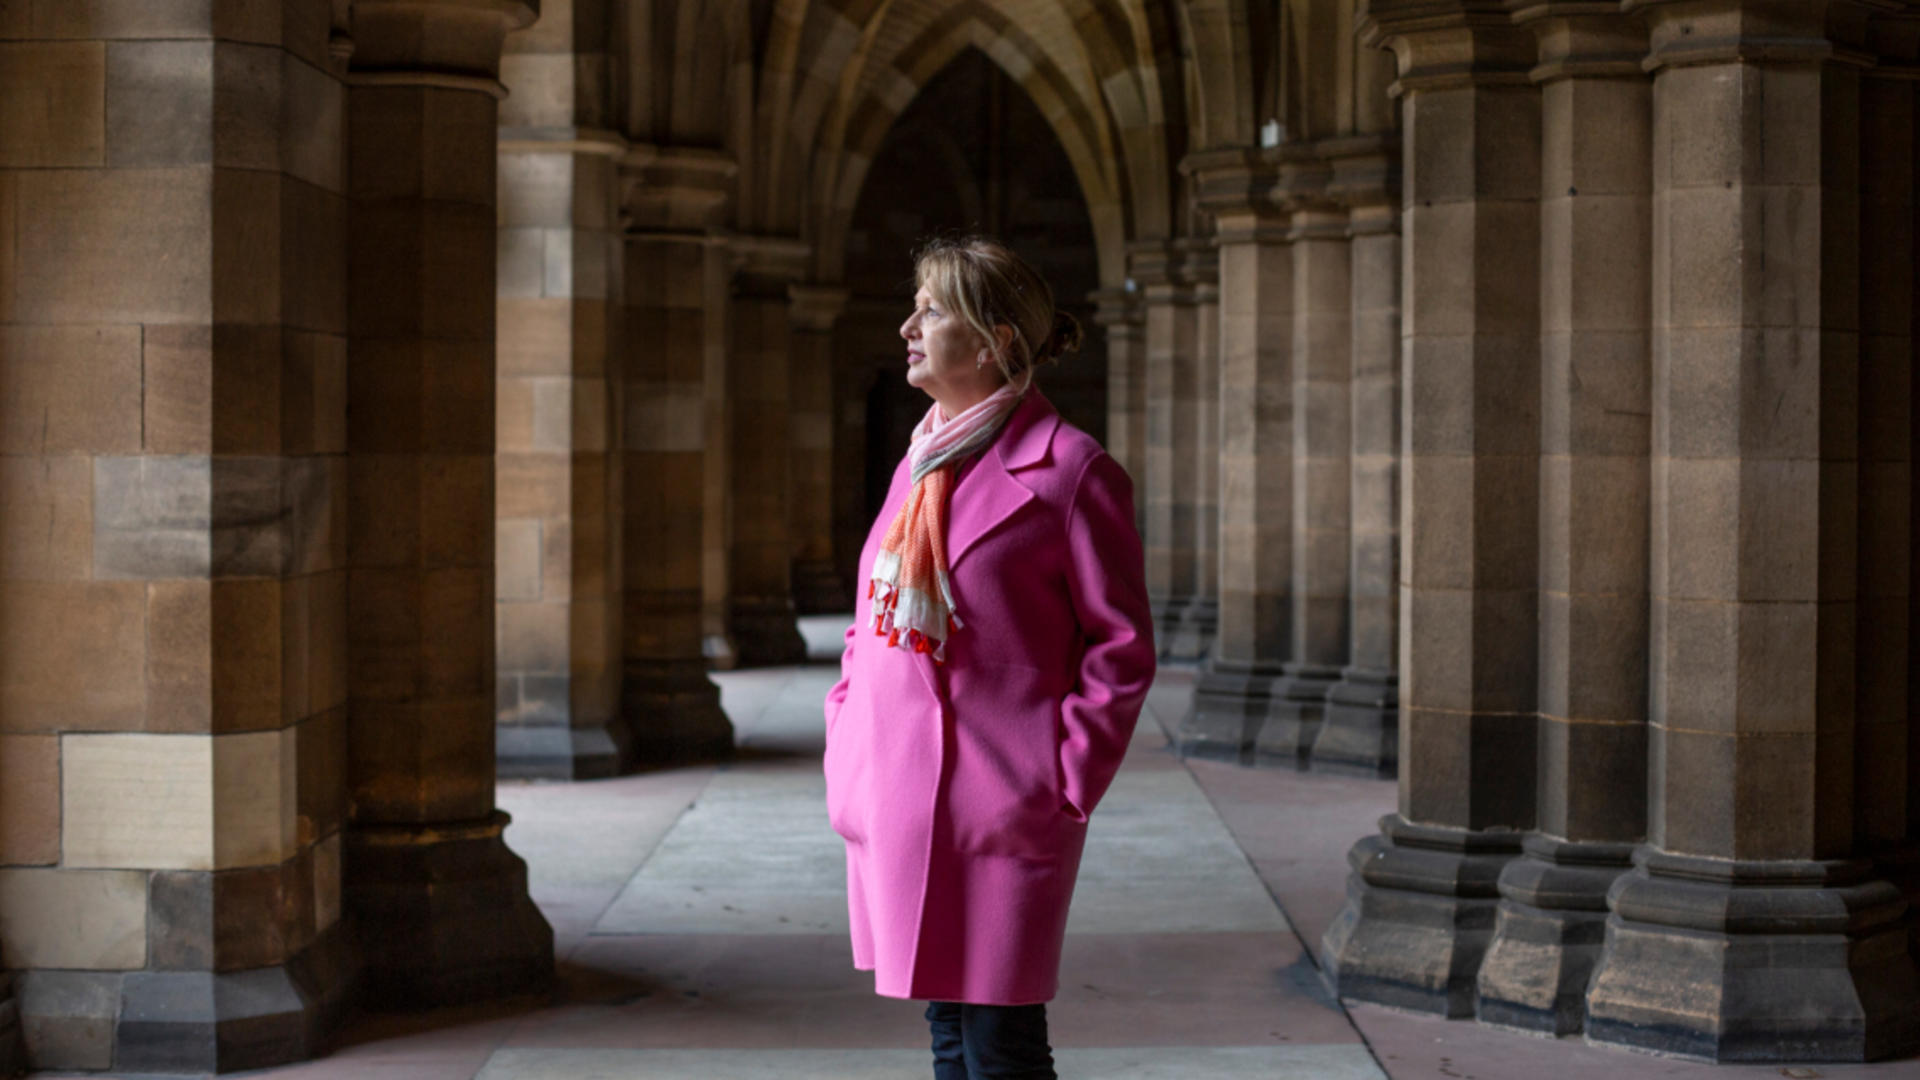 Mary McAleese standing between pillars with a romanesque arch in the background